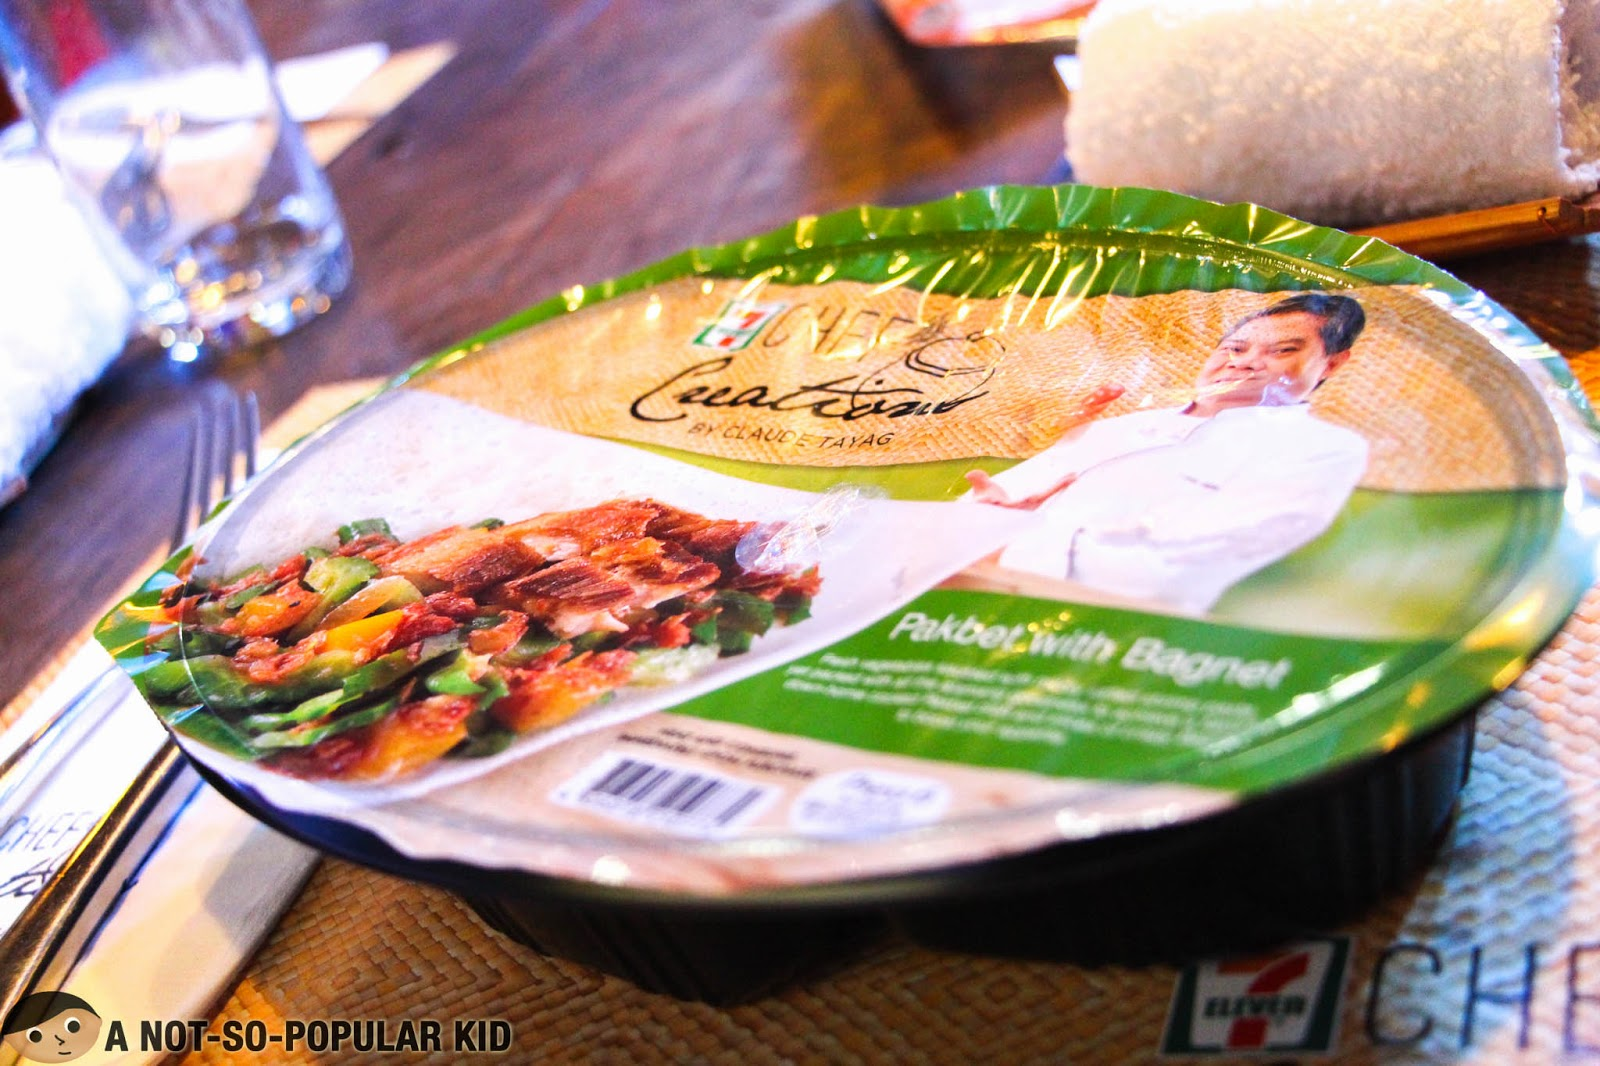 The Pakbet with Bagnet of 7 Eleven's Chef Creations